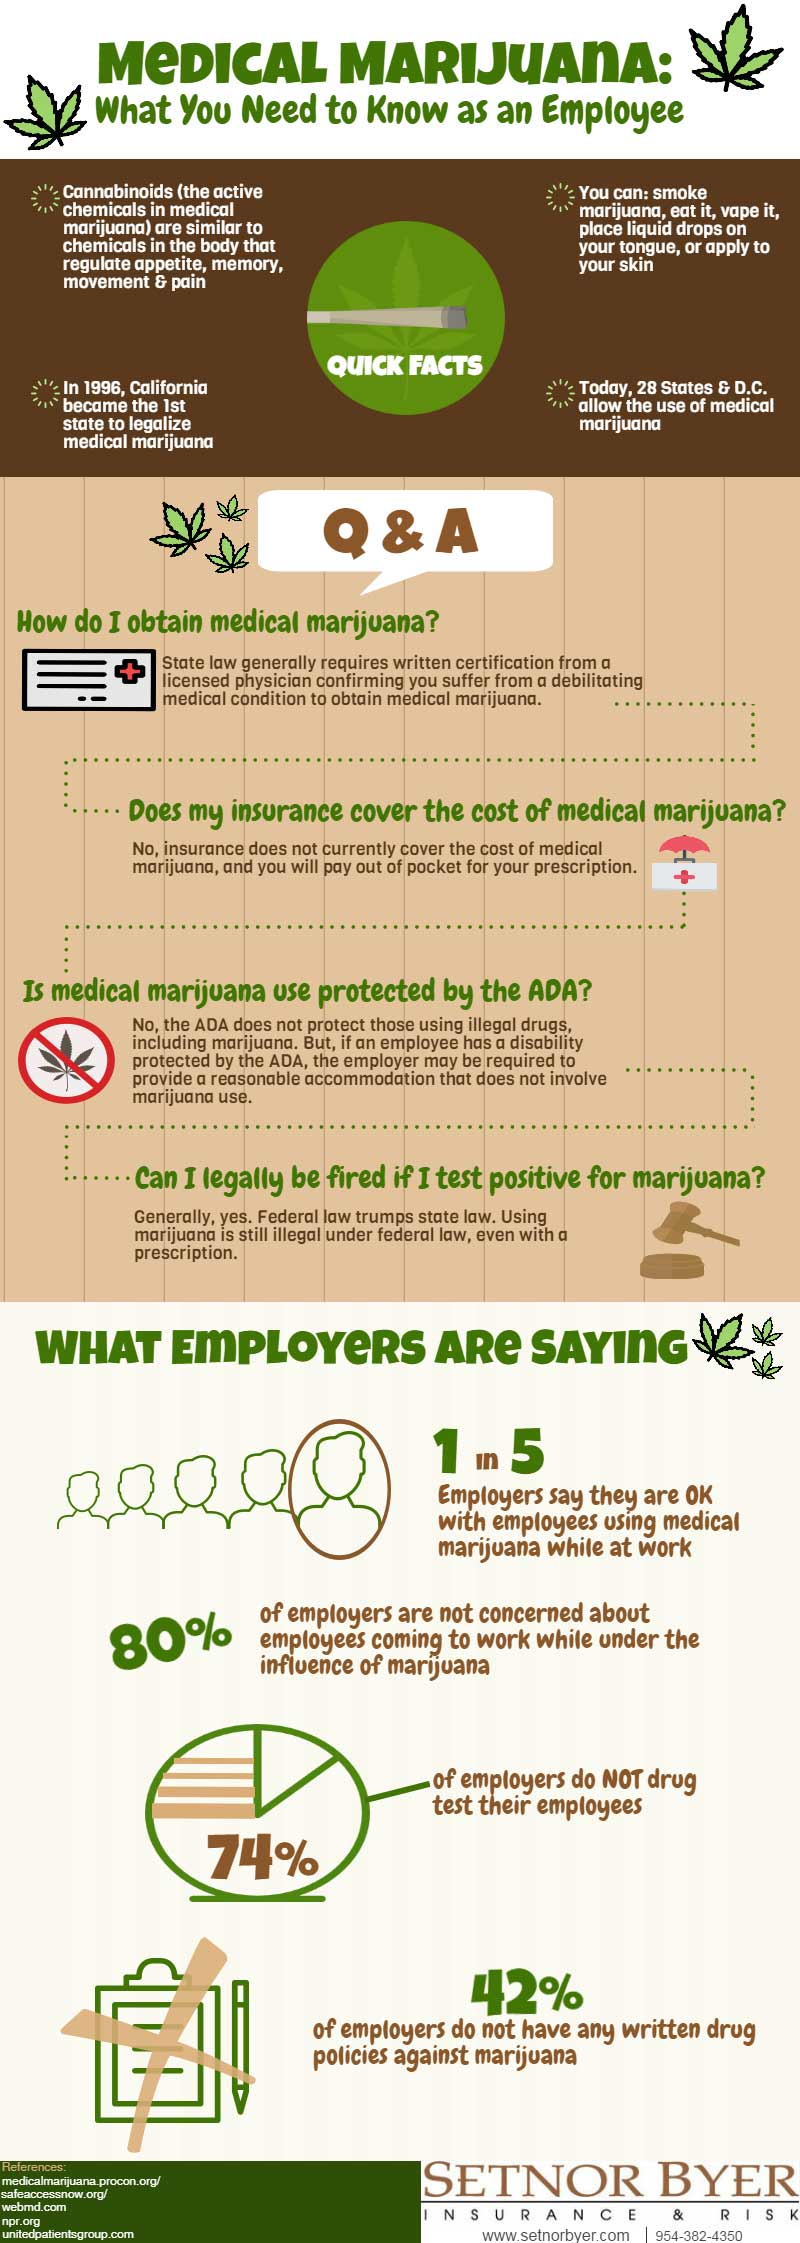 Marijuana and employment,employment discrimination,marijuana,cannabis,infographic